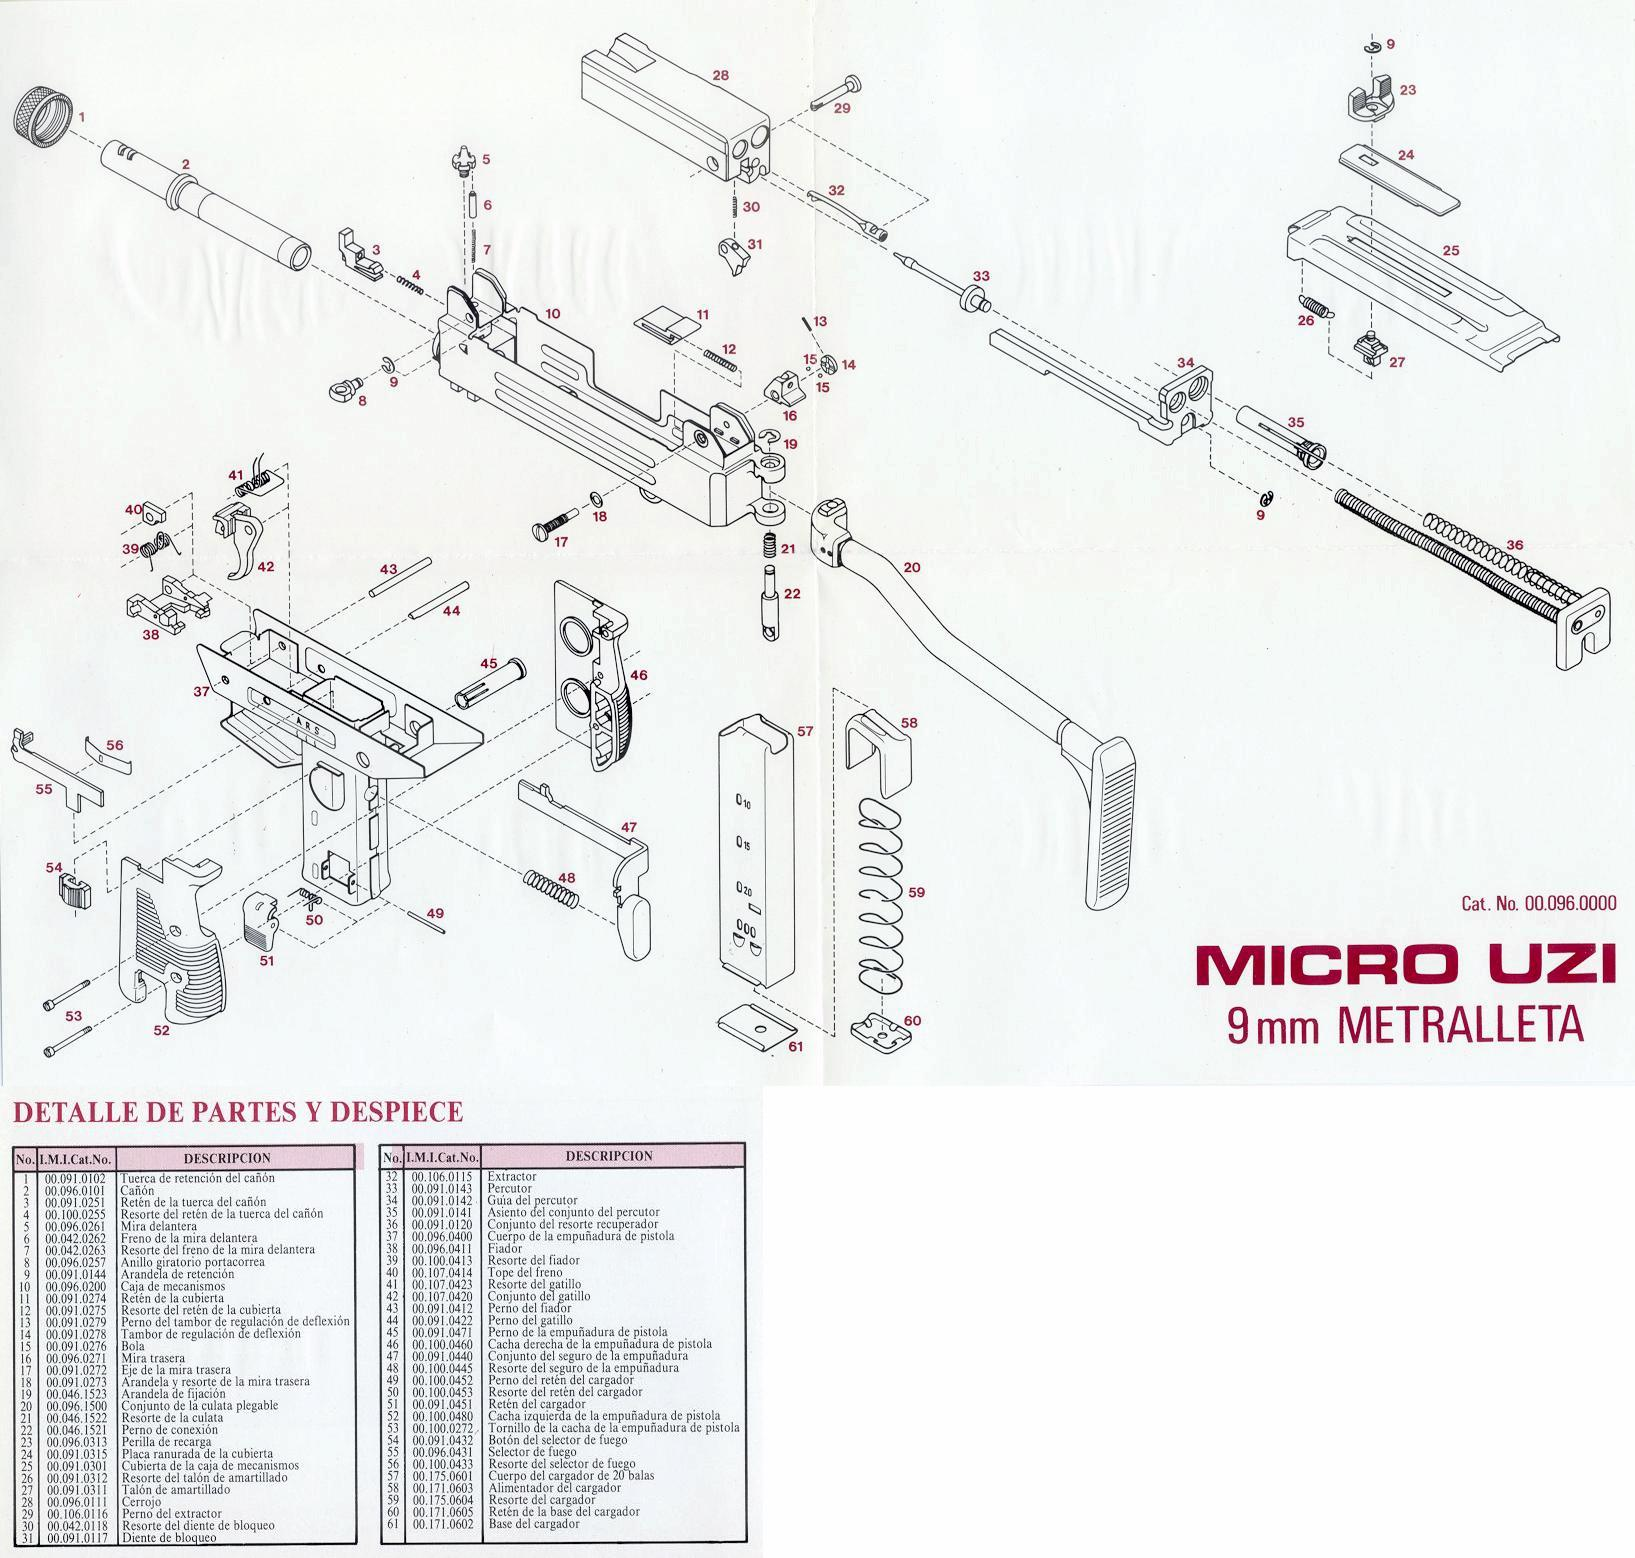 Uzi Schematic Wiring Diagram Spanish Diagrams Micro Schemauzi Talk Parts Suppressed